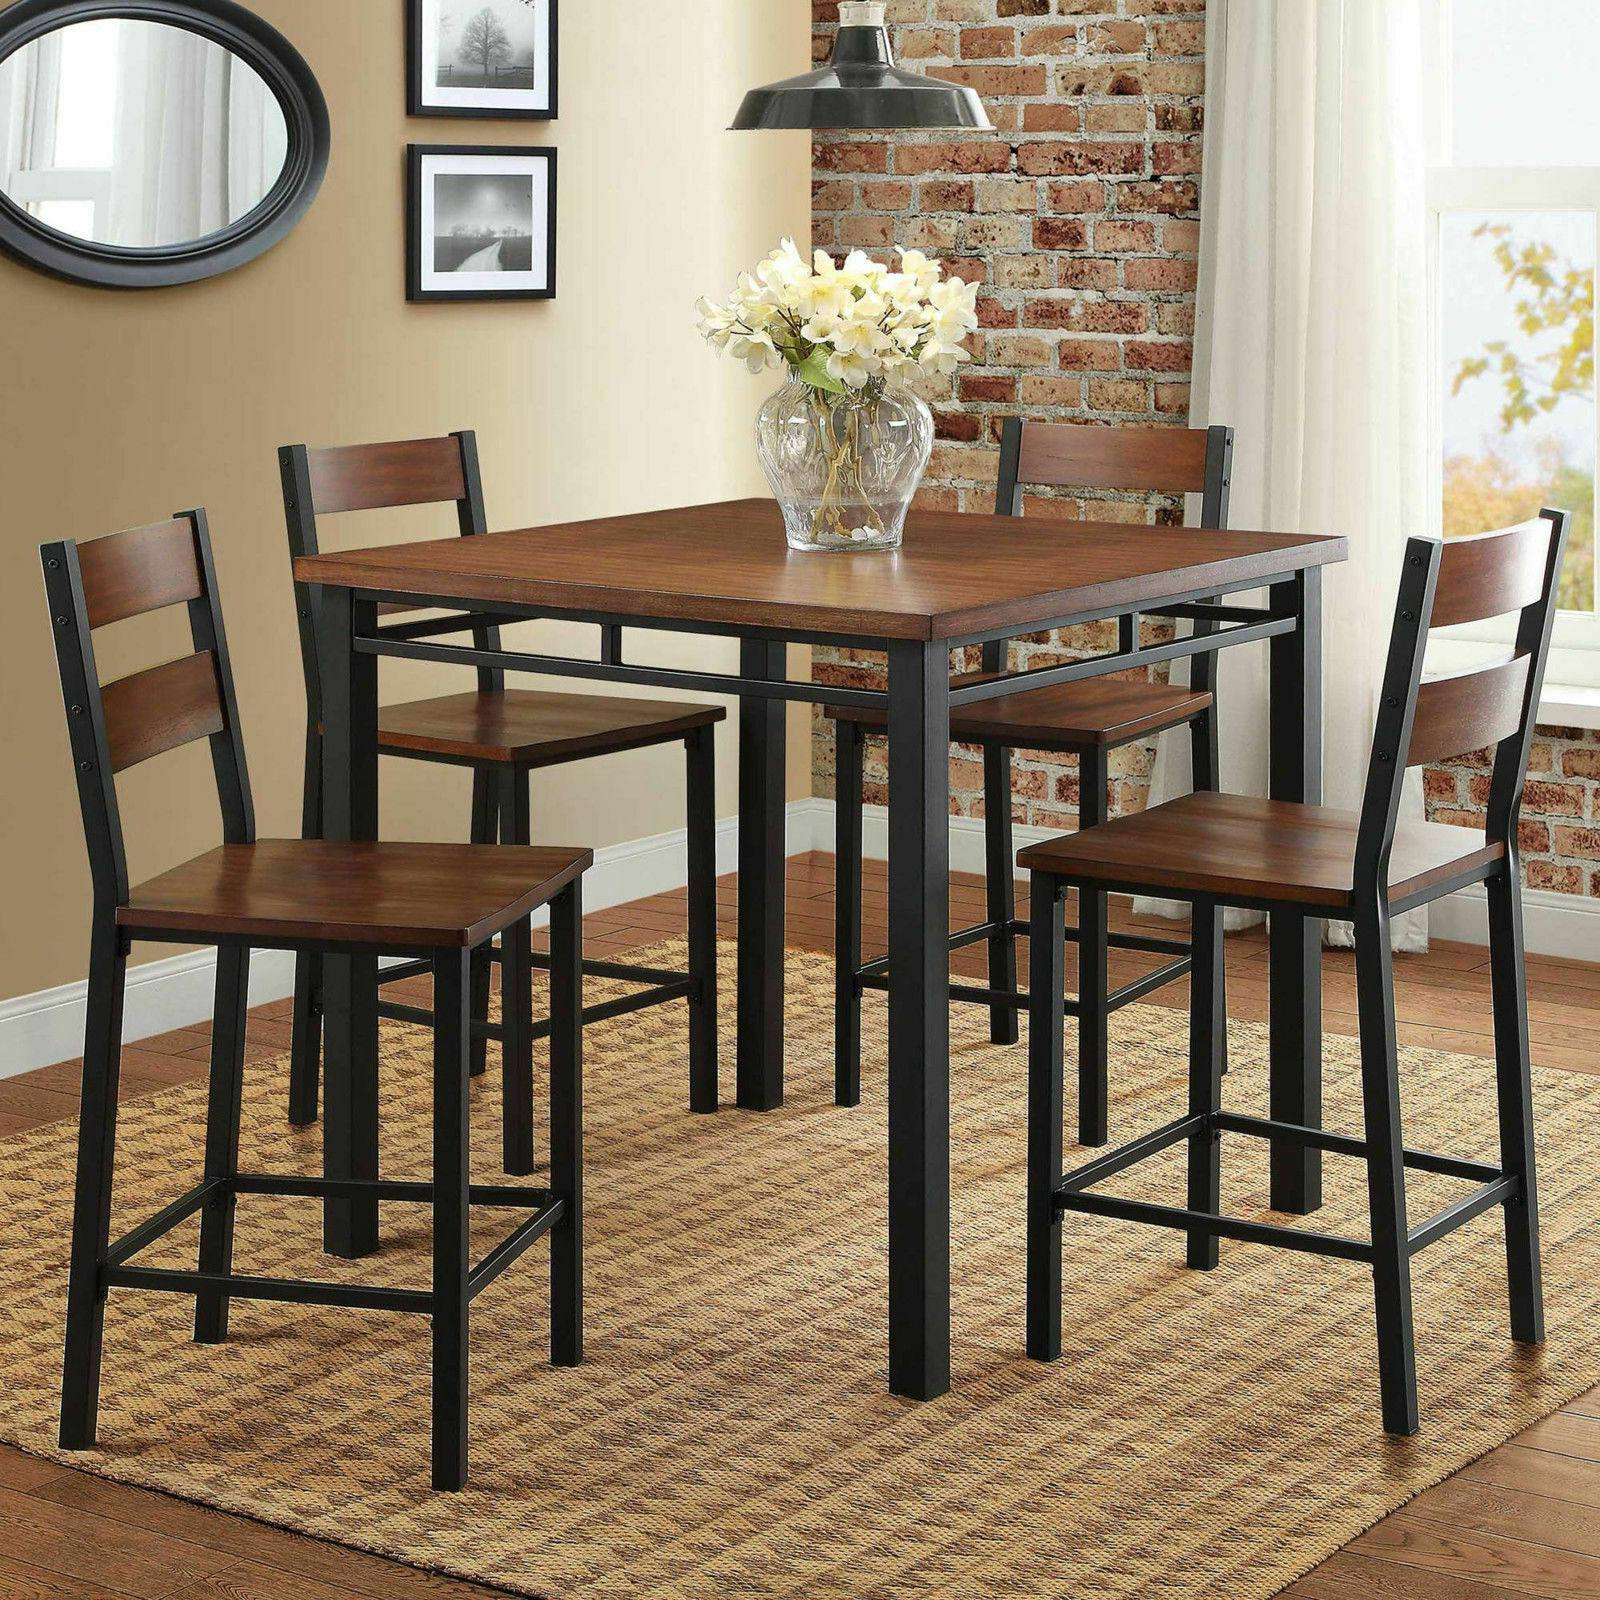 2020 5 Piece Counter Height Dining Set (View 5 of 25)